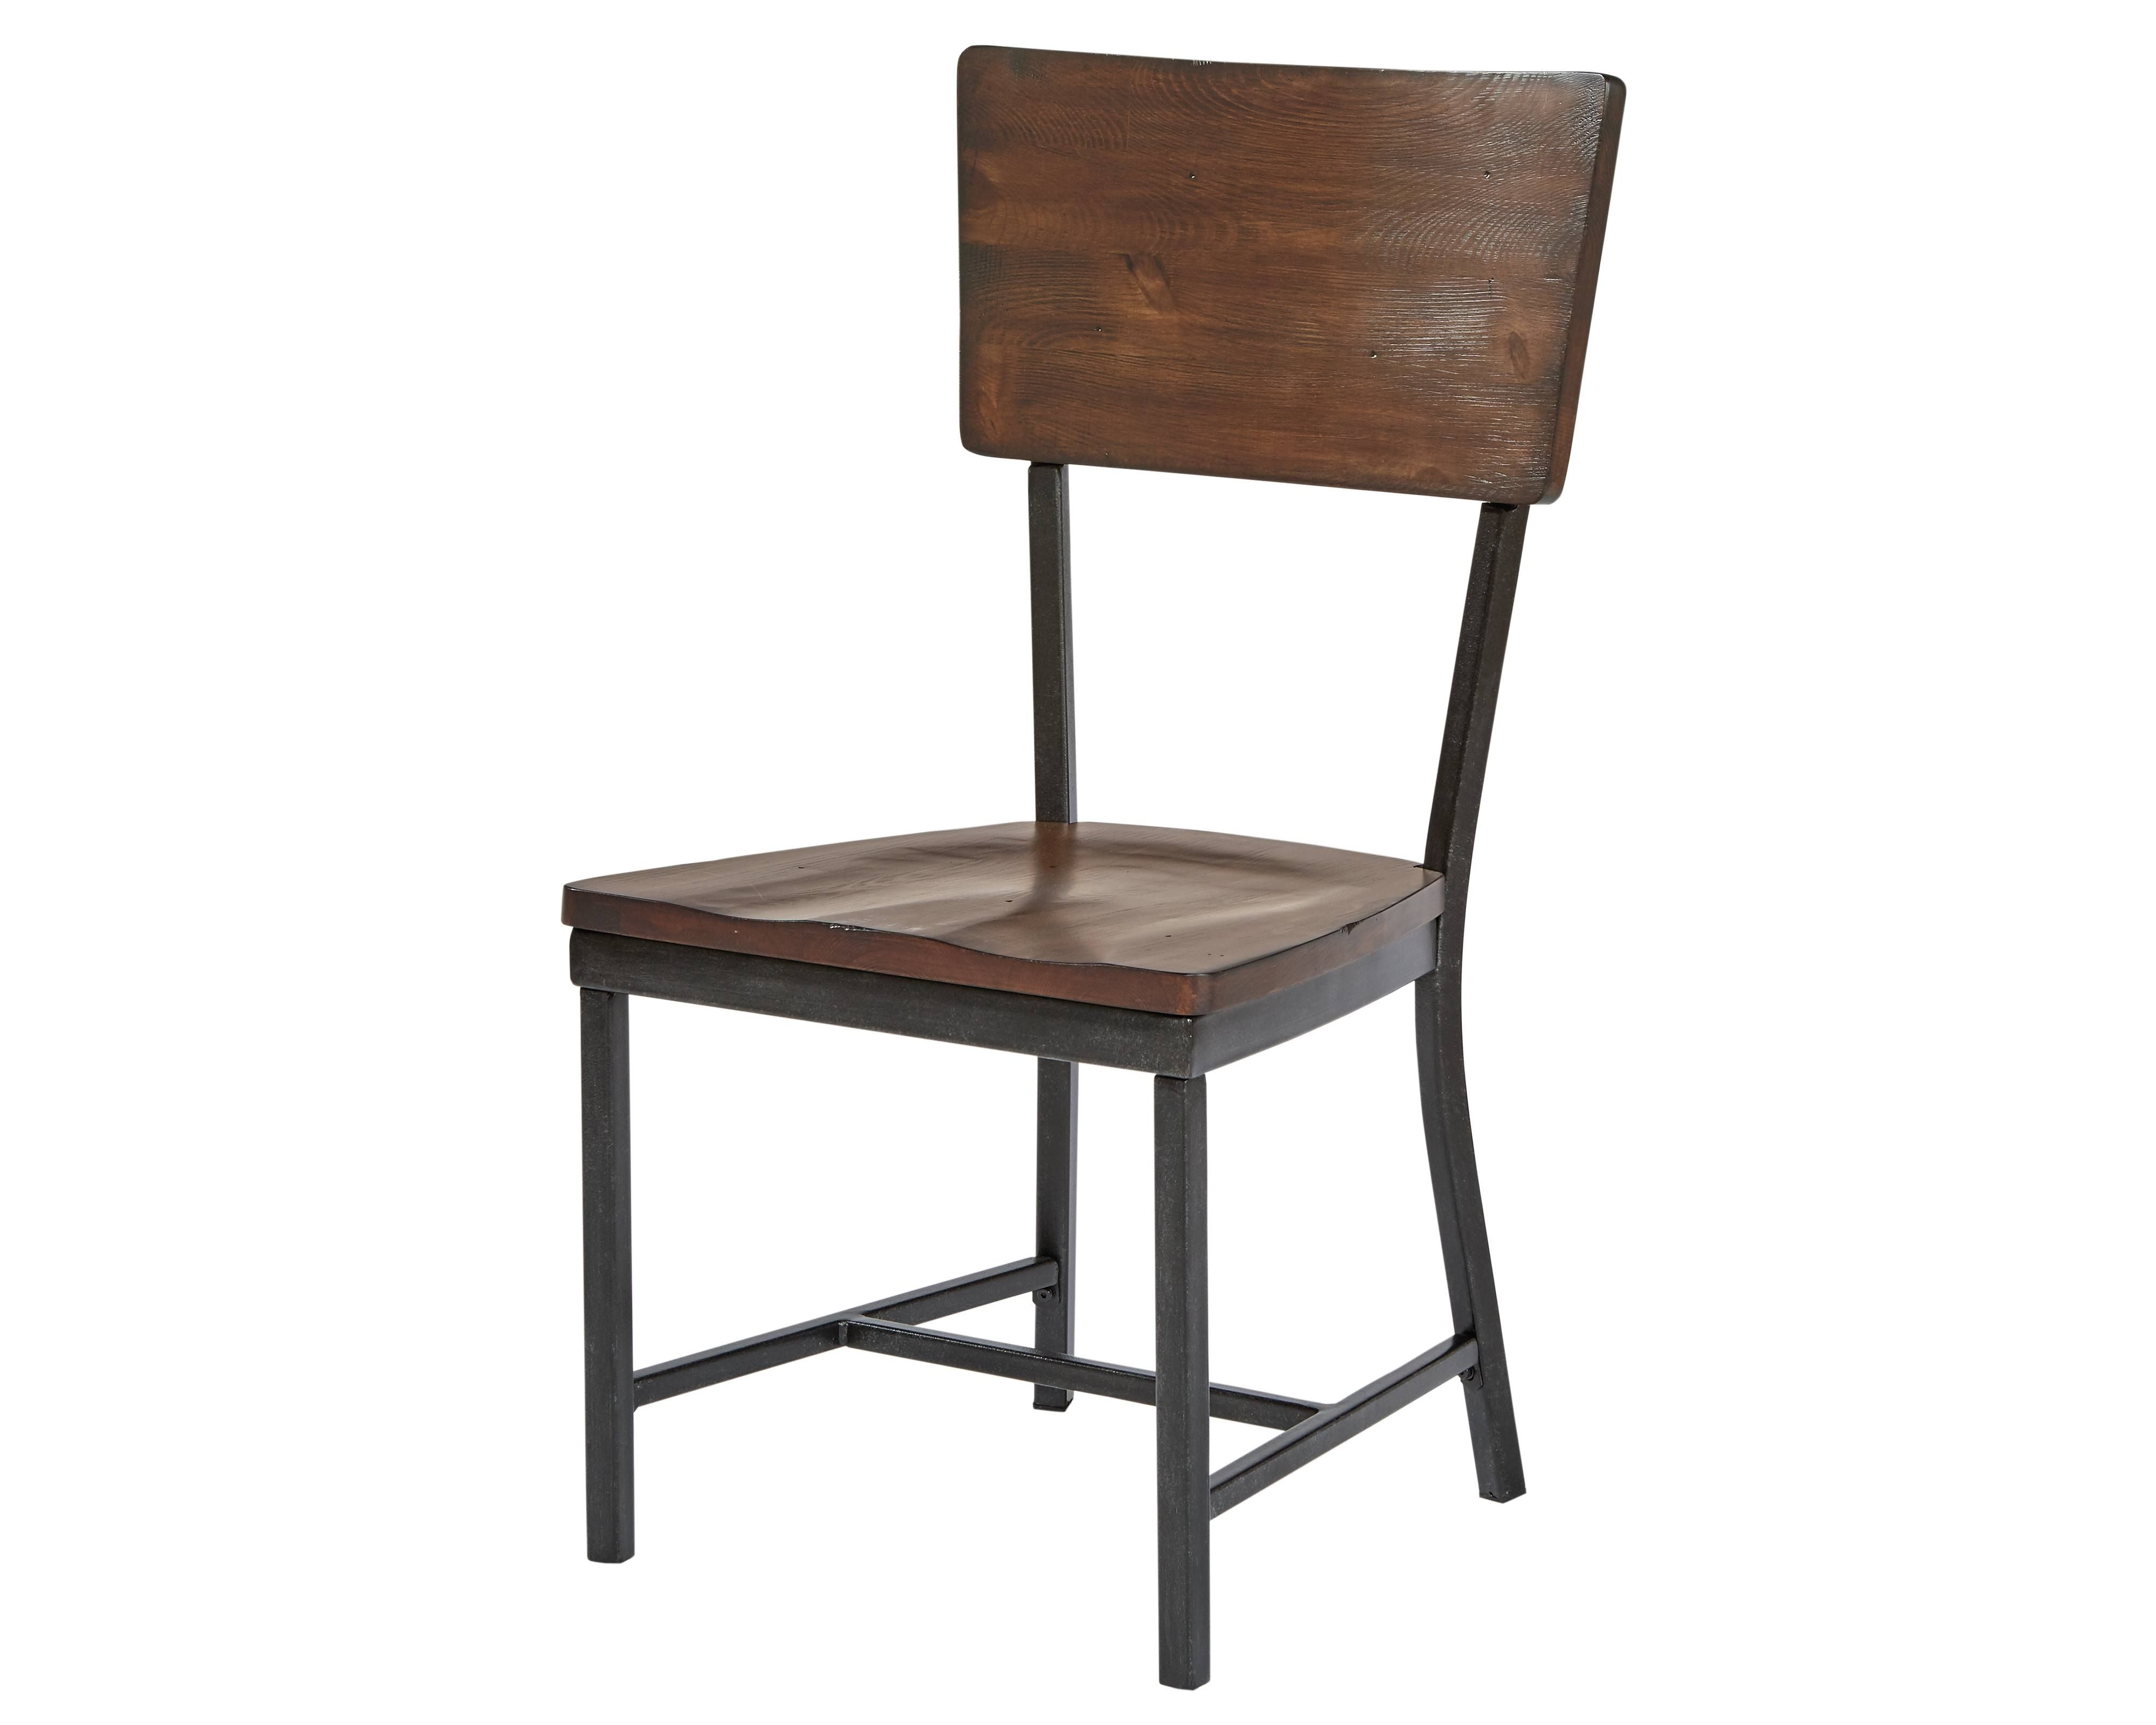 Widely Used Magnolia Home Demi Flannel Wing Side Chairs With Regard To Industrial Dining With Demi Wing Chairs – Magnolia Home (View 15 of 20)